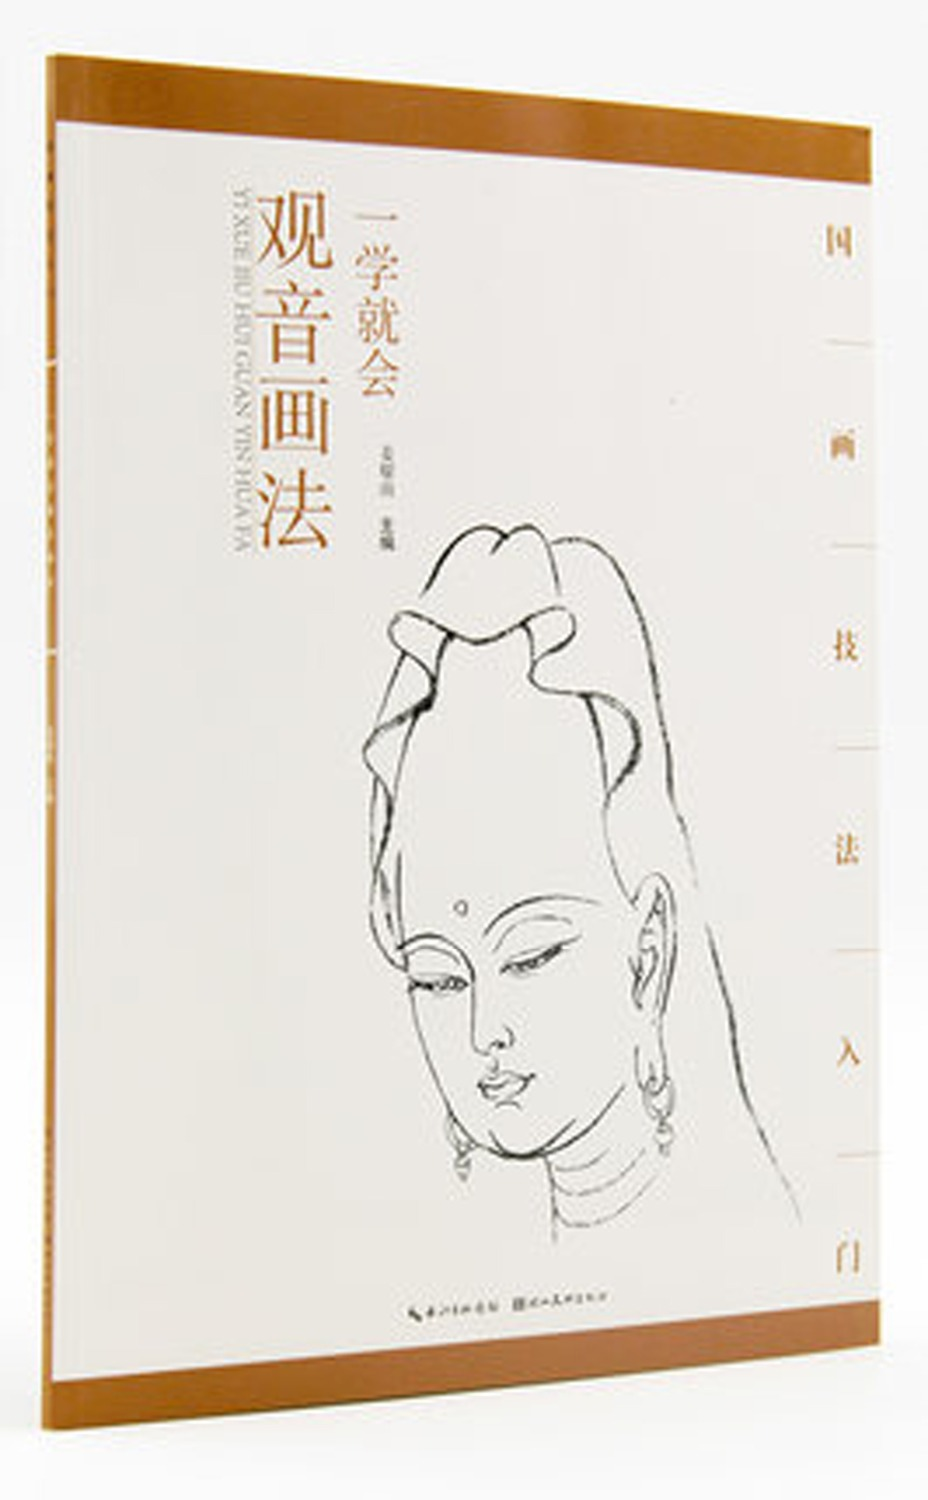 A study will be the introduction of Chinese painting techniques for guan yin A study will be the introduction of Chinese painting techniques for guan yin